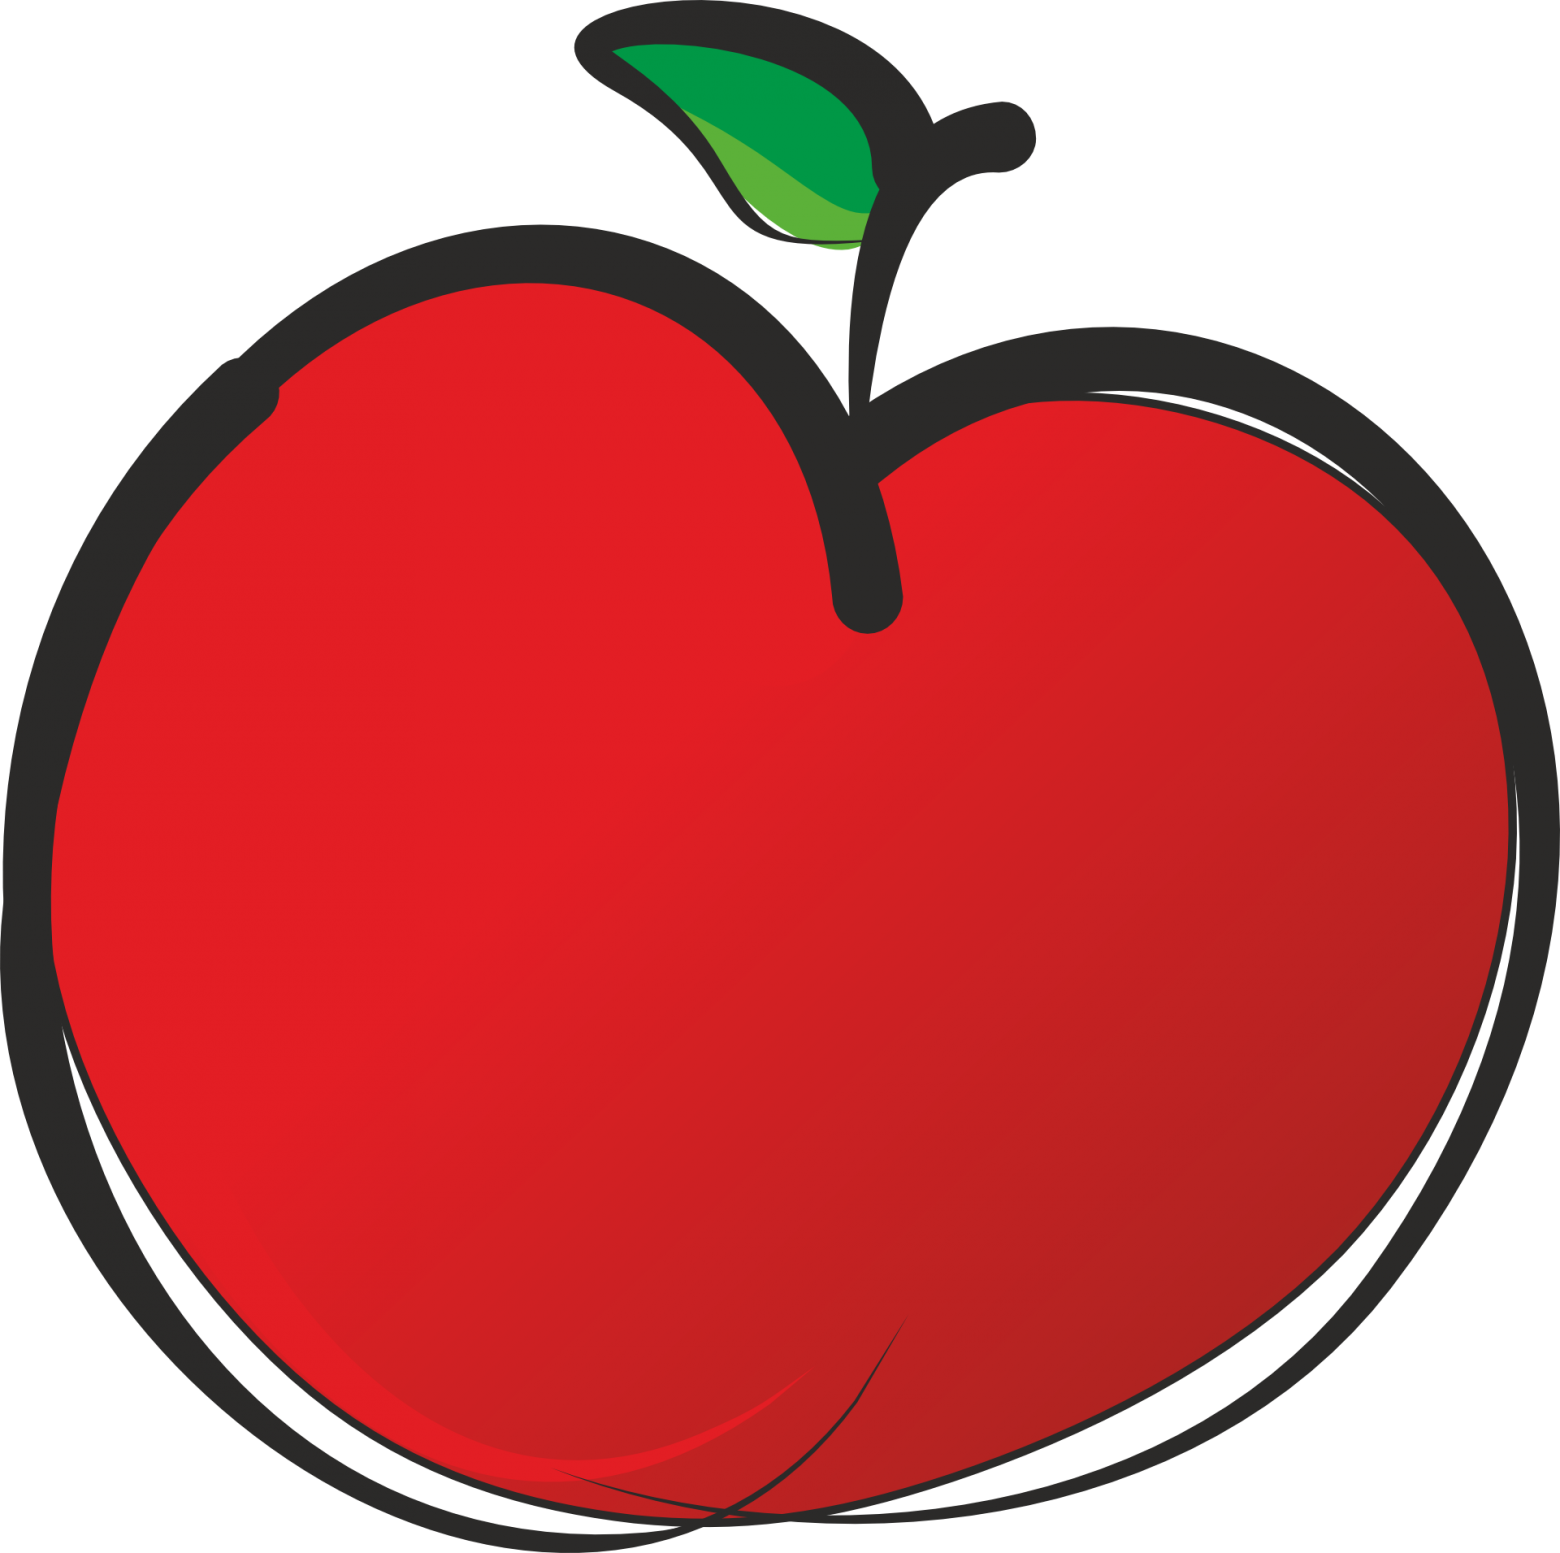 clipart picture of apple - photo #25